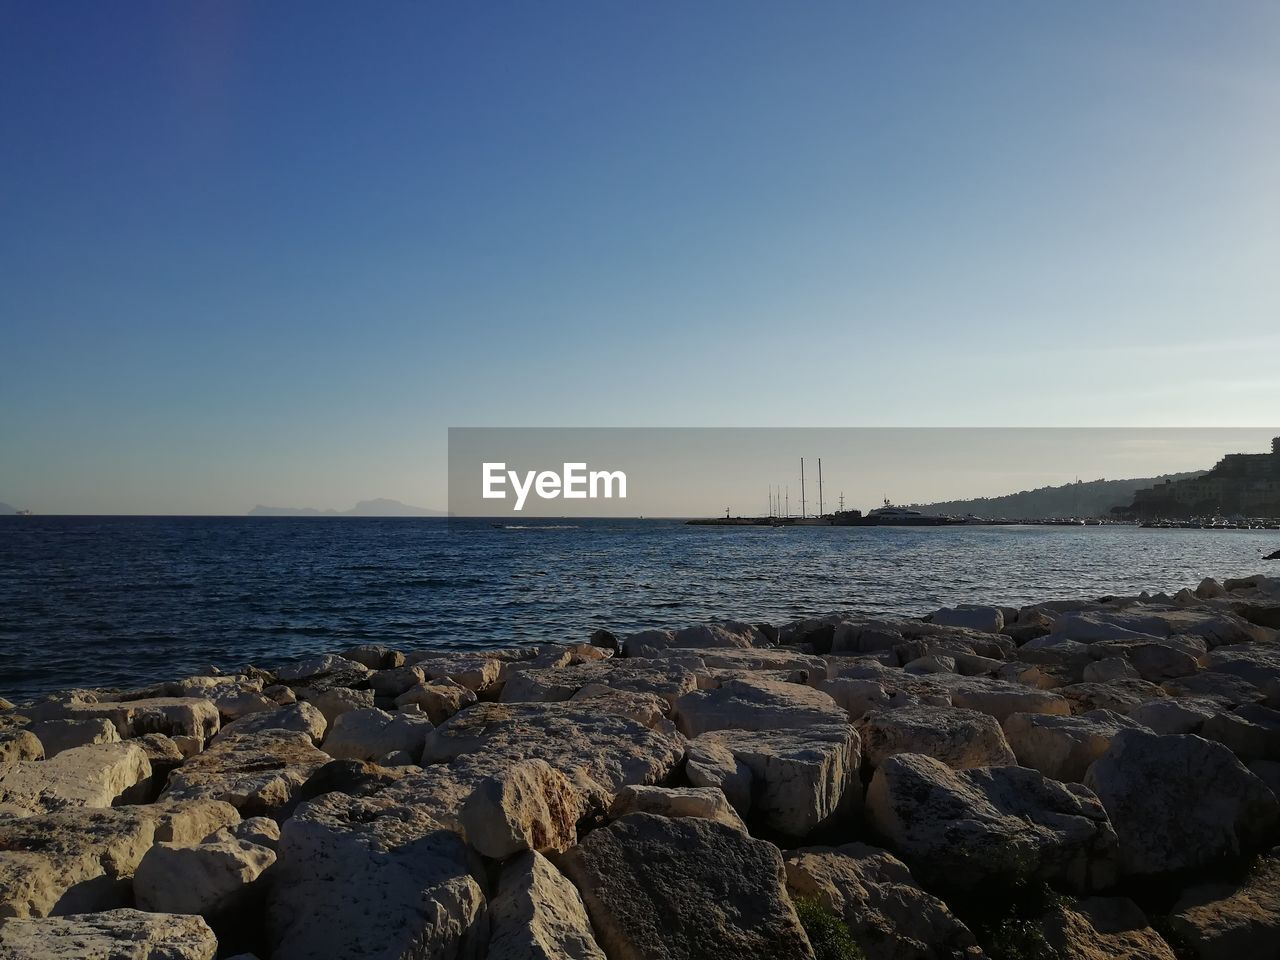 sea, sky, rock, water, rock - object, solid, copy space, scenics - nature, beauty in nature, nature, tranquil scene, no people, tranquility, clear sky, land, horizon, beach, day, outdoors, horizon over water, groyne, rocky coastline